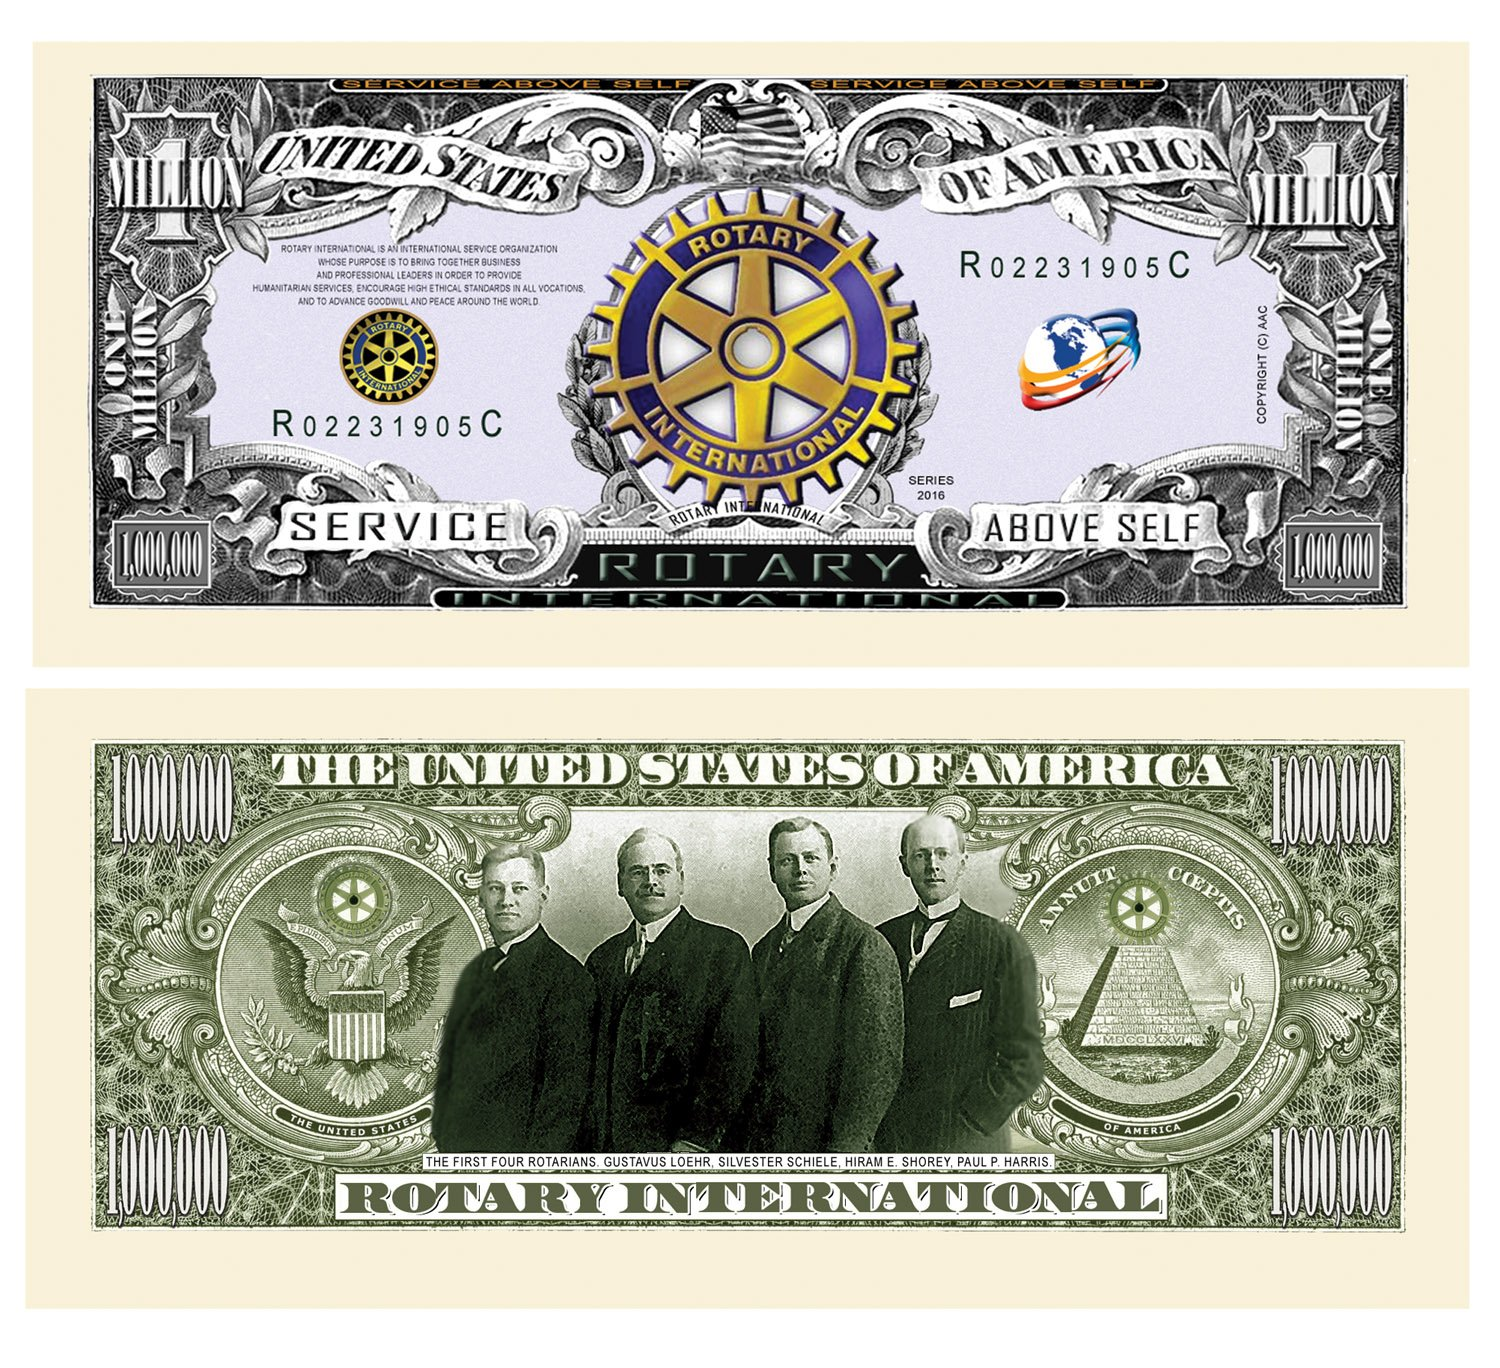 Pack of 100 - Rotary Club Rotarian Million Dollar Bill - Best Gift Or Keepsake for Rotarians